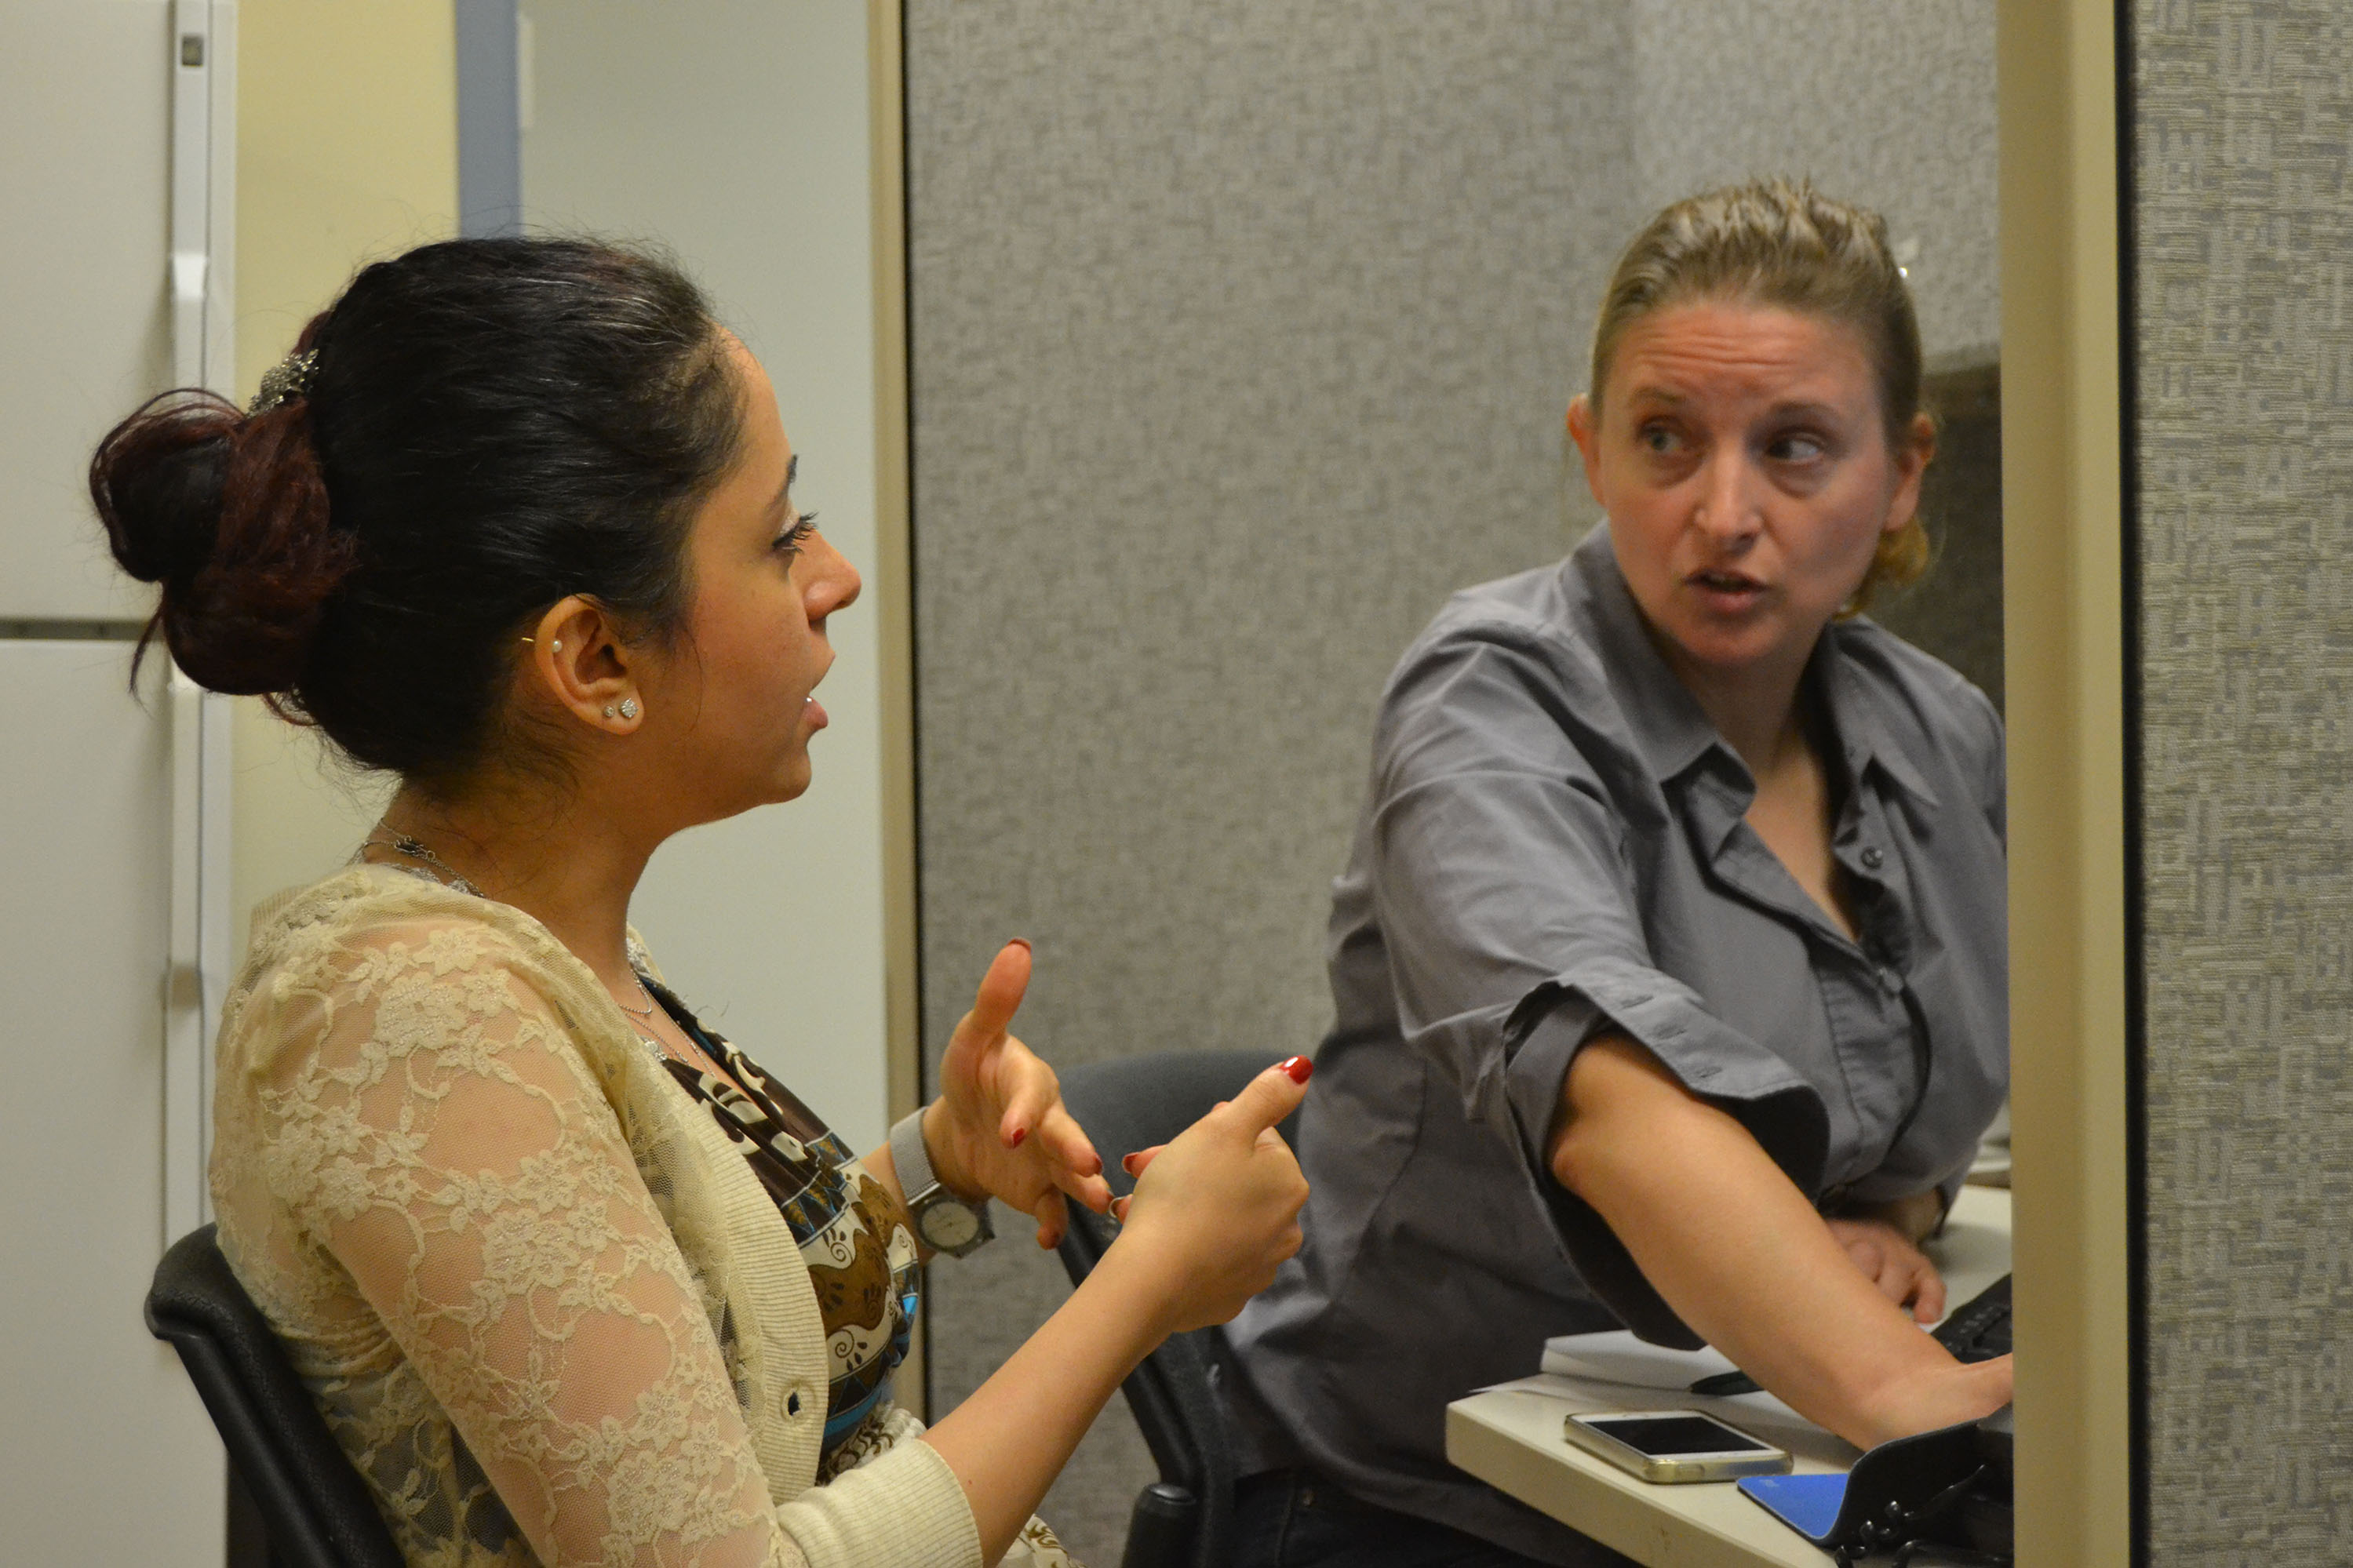 Professor Yannie ten-Broeke (right) brainstorming research ideas with student Behgol